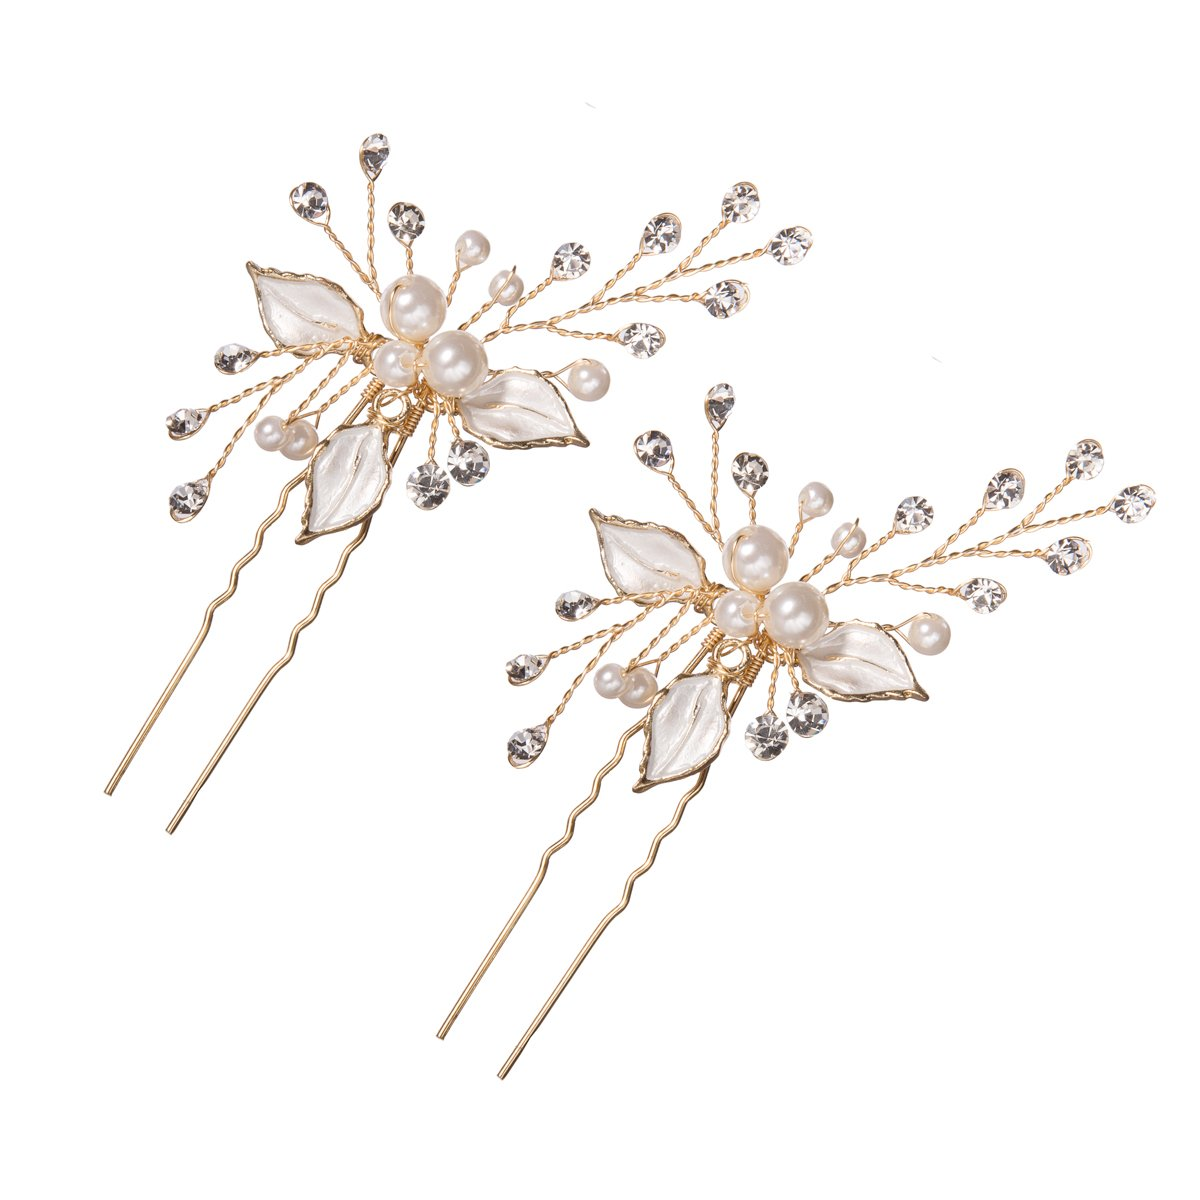 Feyarl Handmade Bridal Silver Hair Pin Stick with Leaves Inlaid Pearl Sparkle Crystal for Hair Decoration (Silver) HP-001